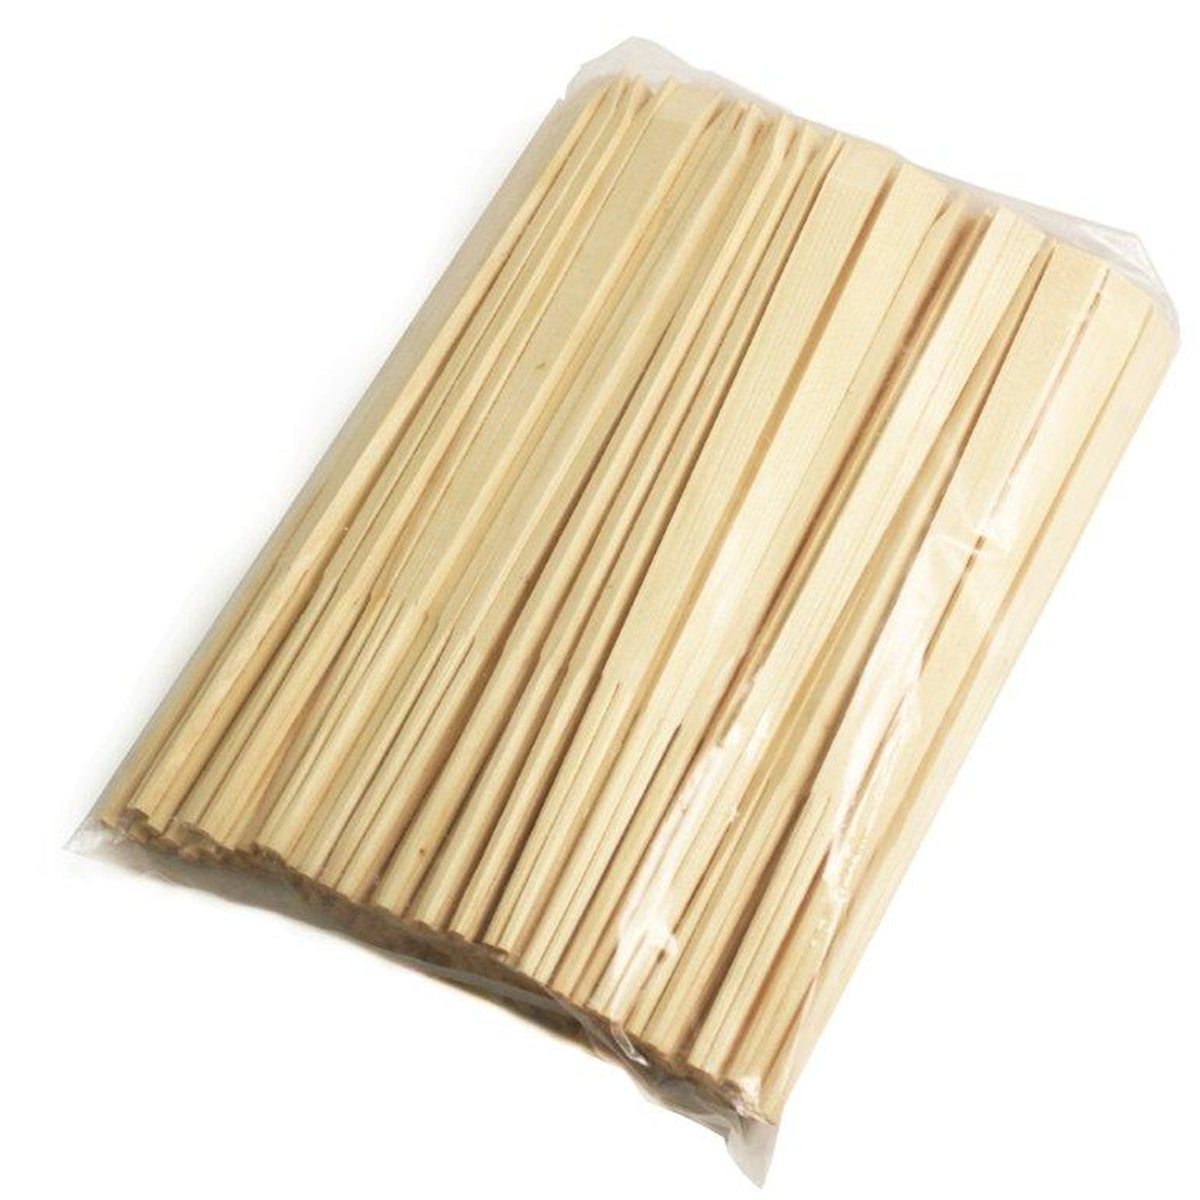 "9.5"" Disposable Pine Chopsticks - 100 Pairs / Pack"